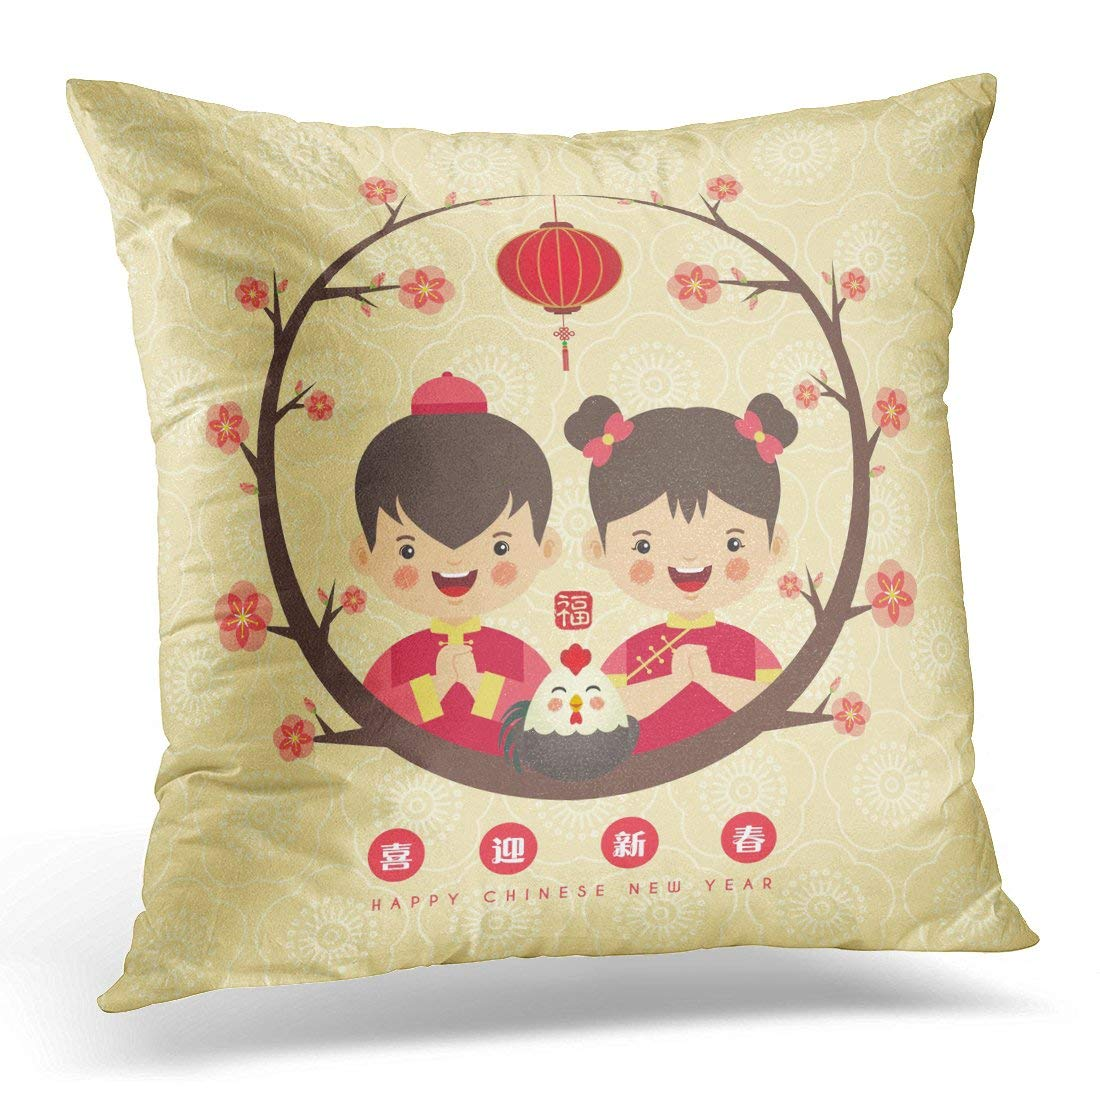 ARHOME CNY Chinese New Year of Cute Kids with Rooster Cherry Blossom Lantern Caption Celebrate Happily Adorable Pillow Case Pillow Cover 20x20 inch